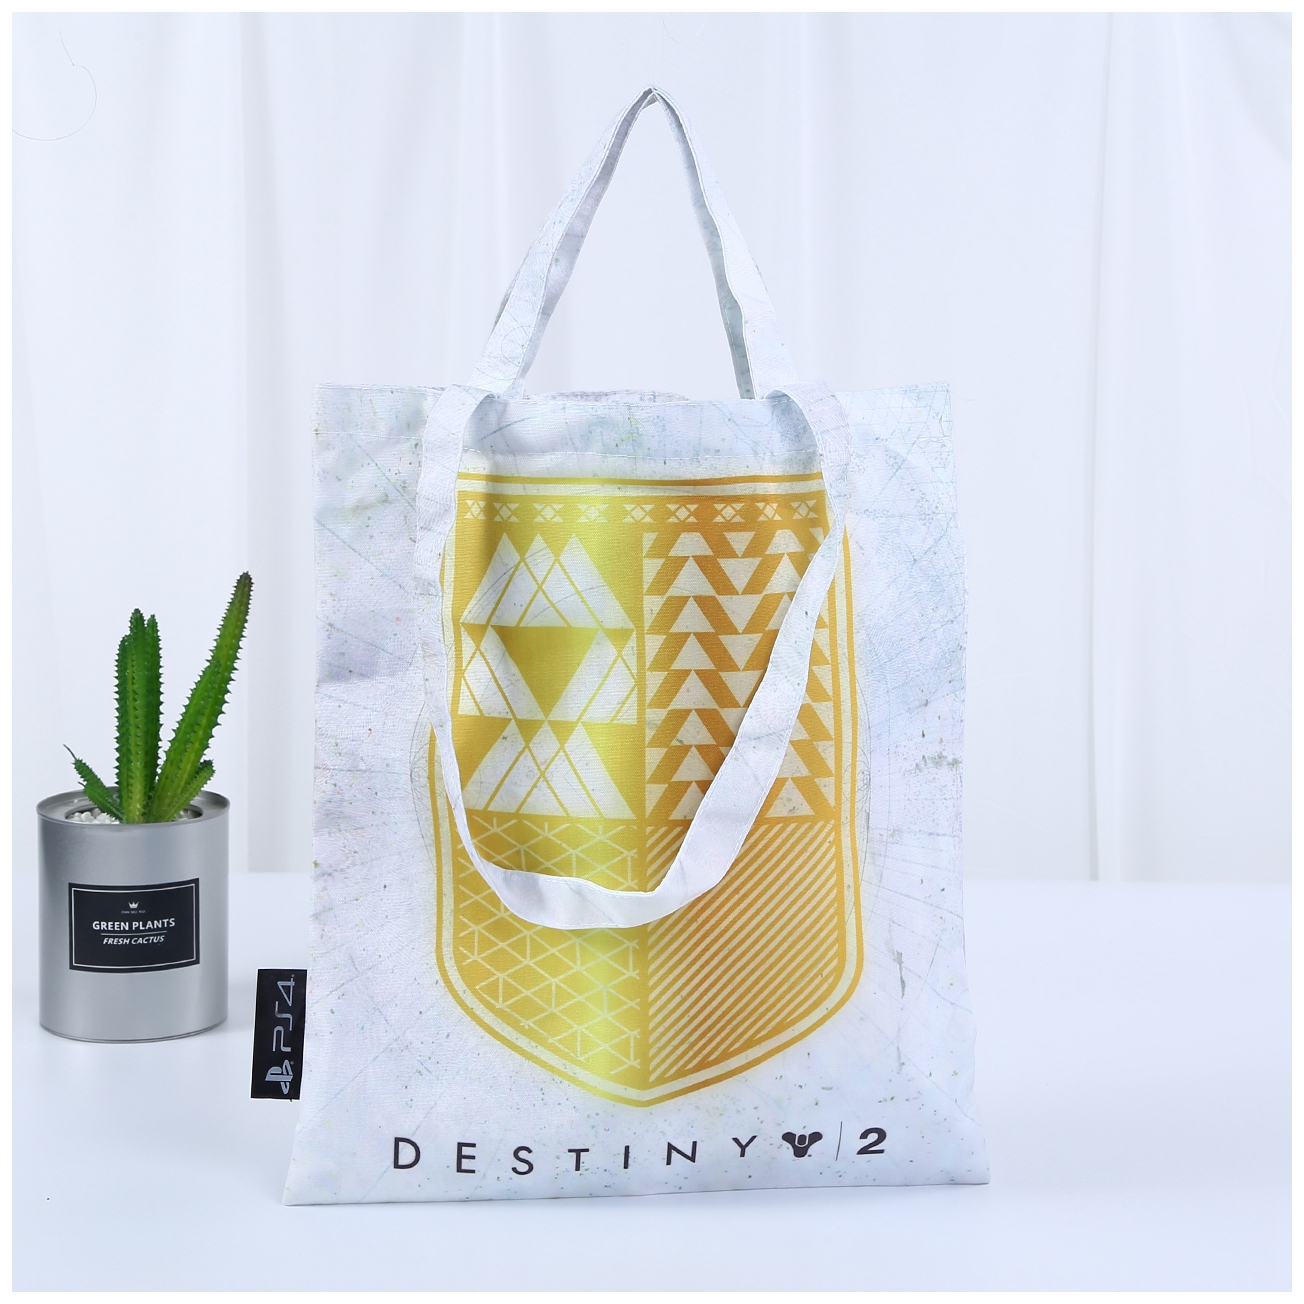 Playstation DESTINY Cotton Bag